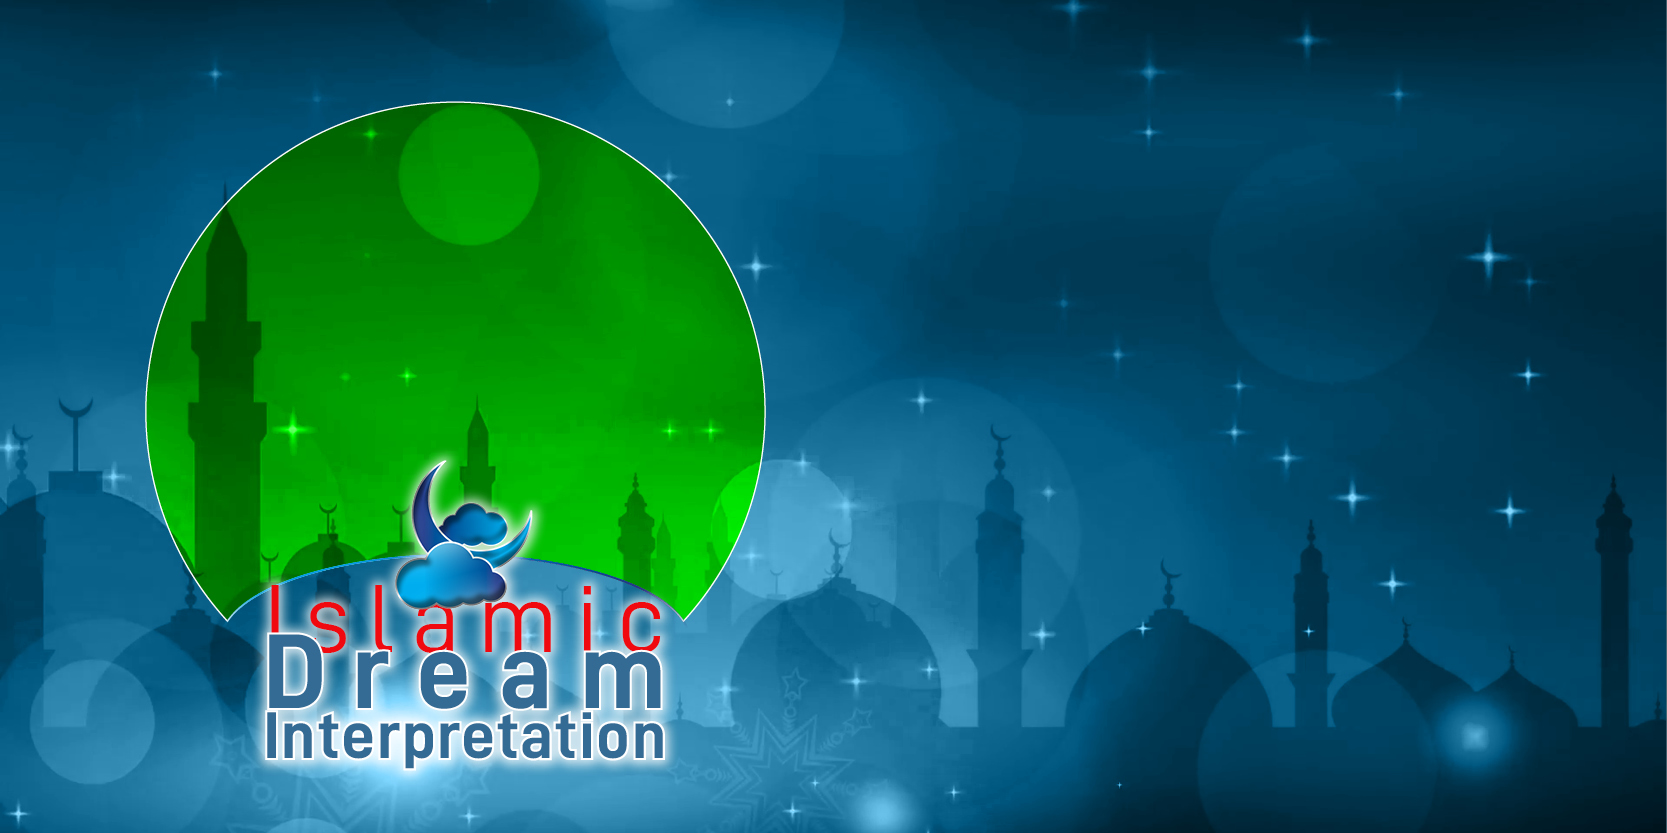 Welcome to our The Largest Islamic Dream Interpretation Website in World